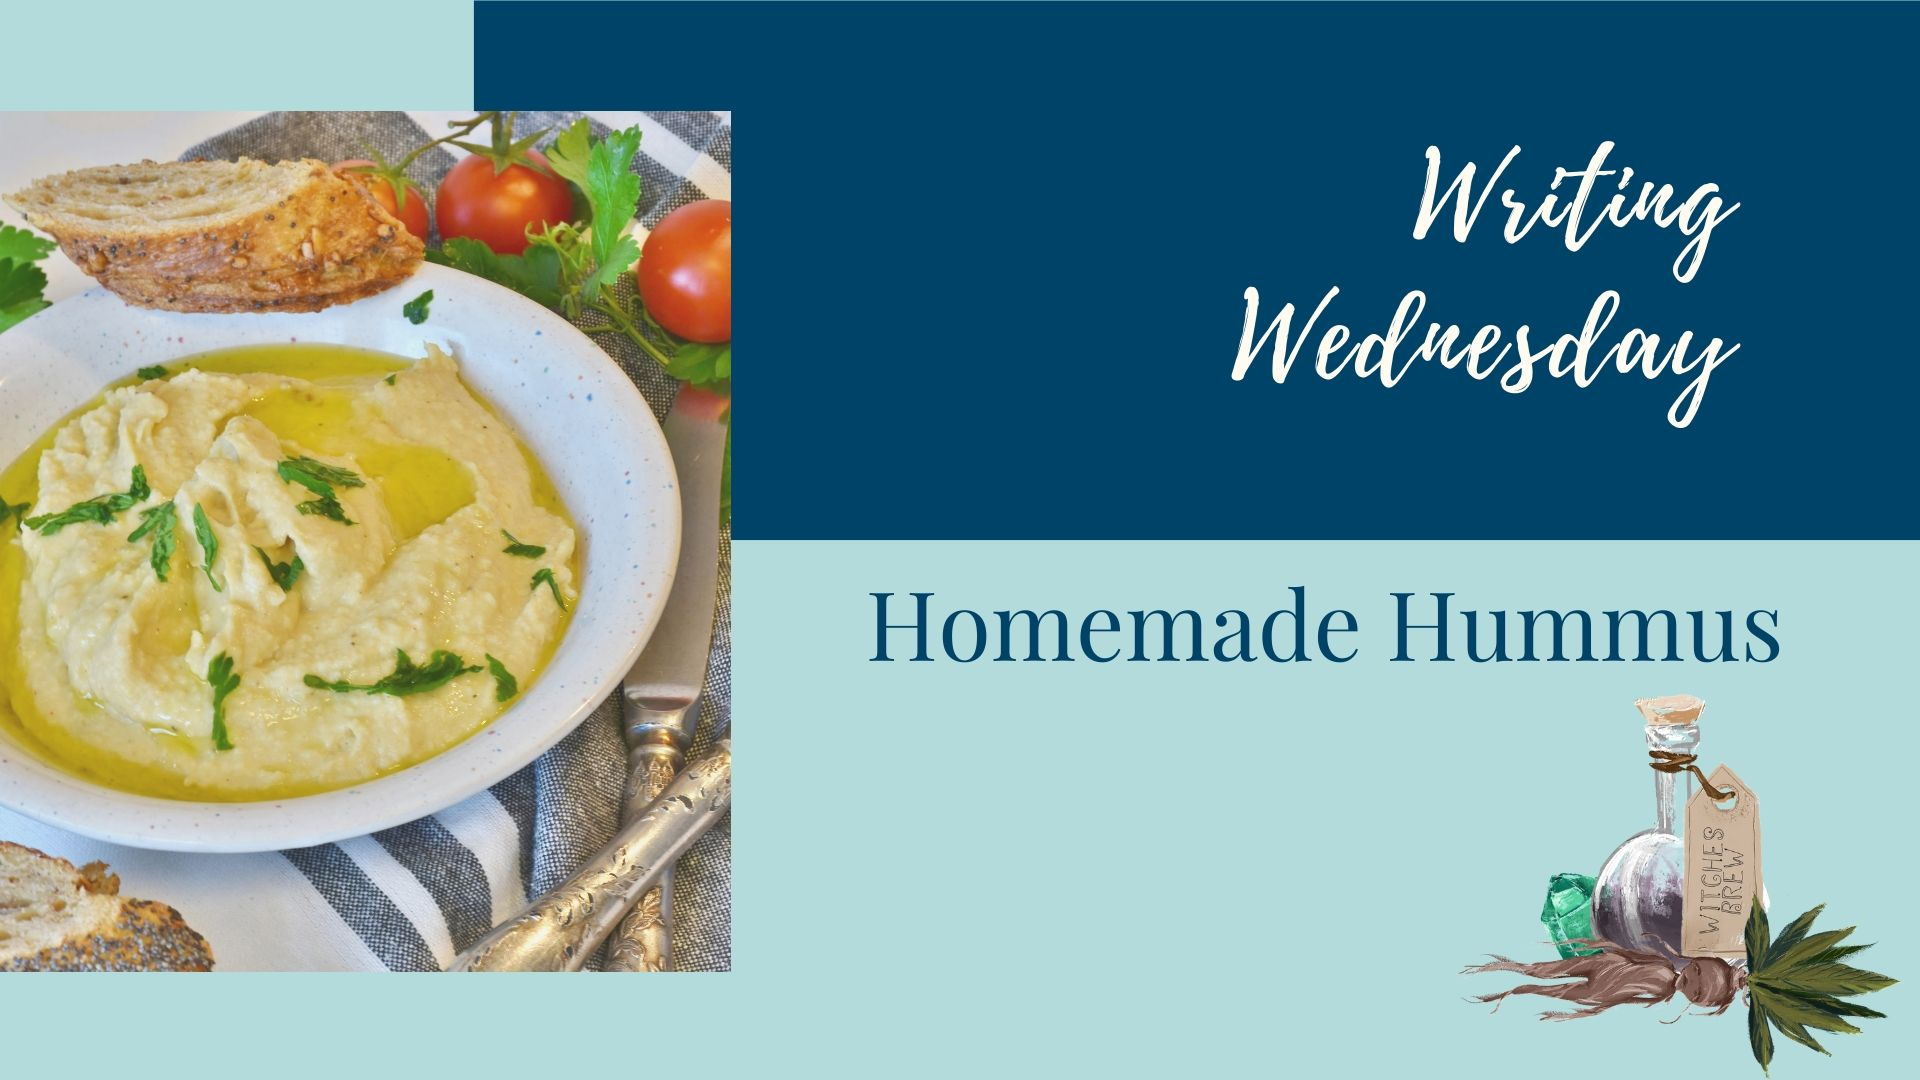 You are currently viewing Writing Wednesday: Homemade Hummus